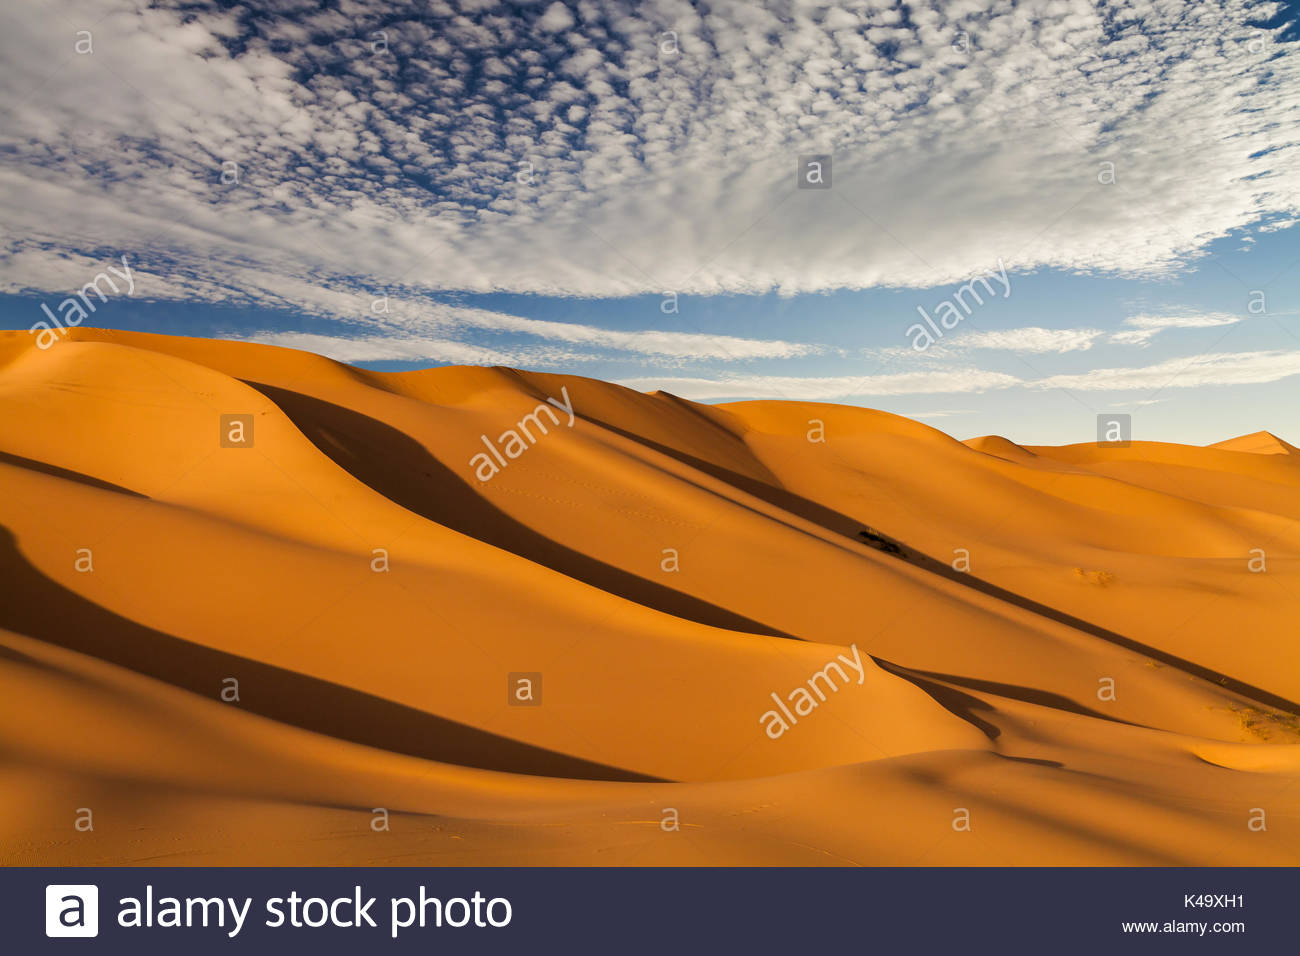 Beautiful sand dunes in the Sahara desert - Stock Image